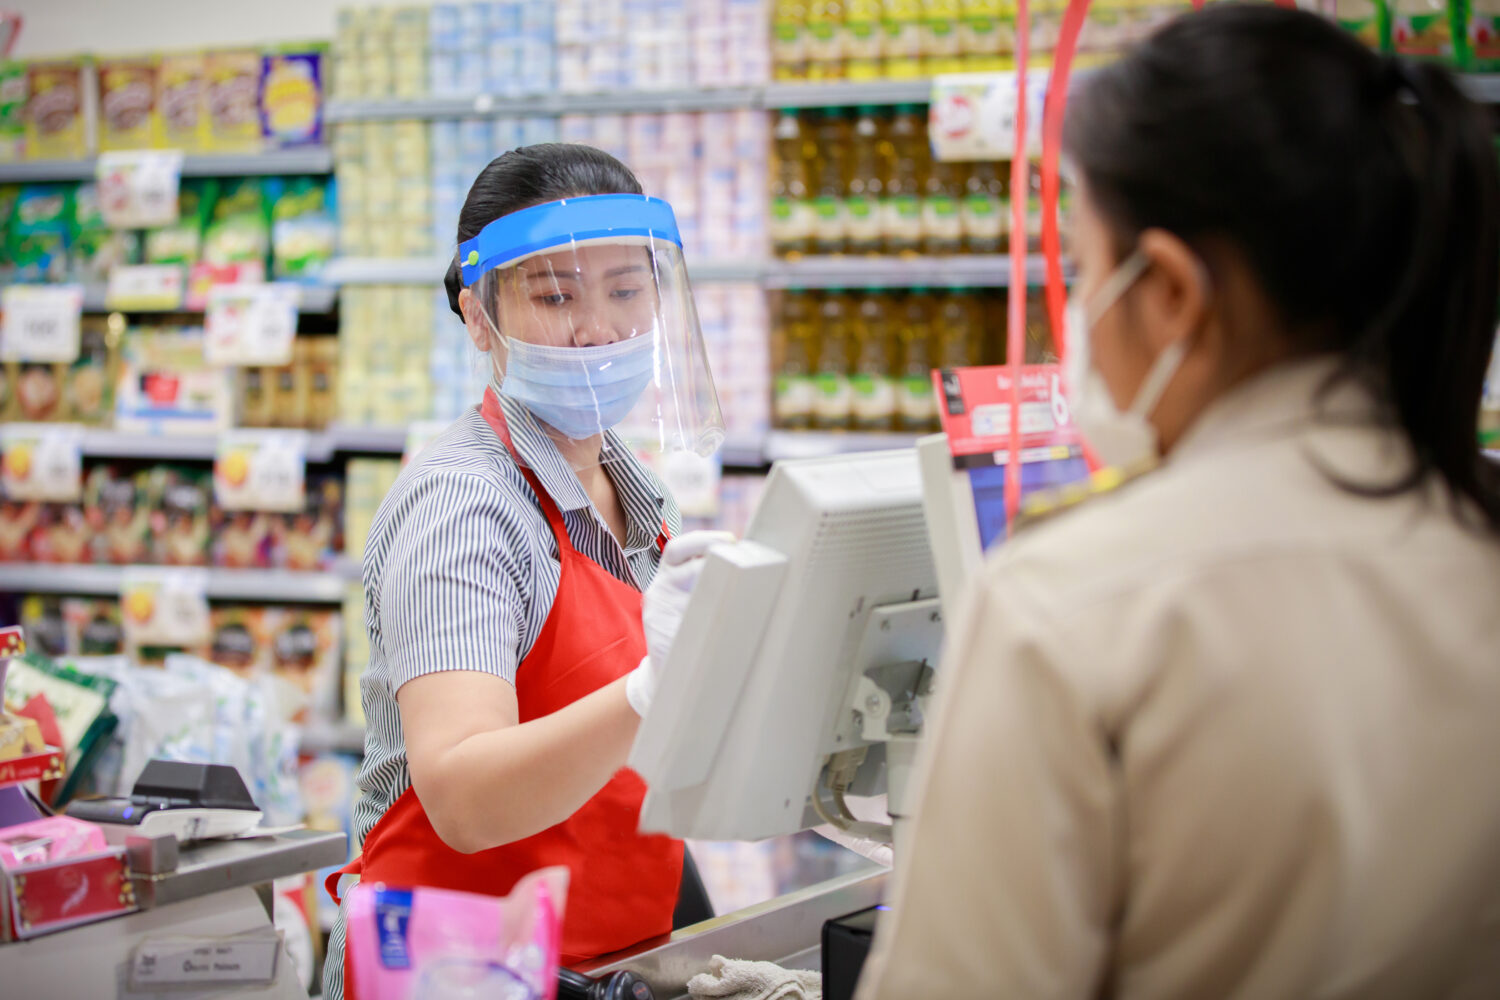 Immigrant grocery store worker during the coronavirus pandemic.